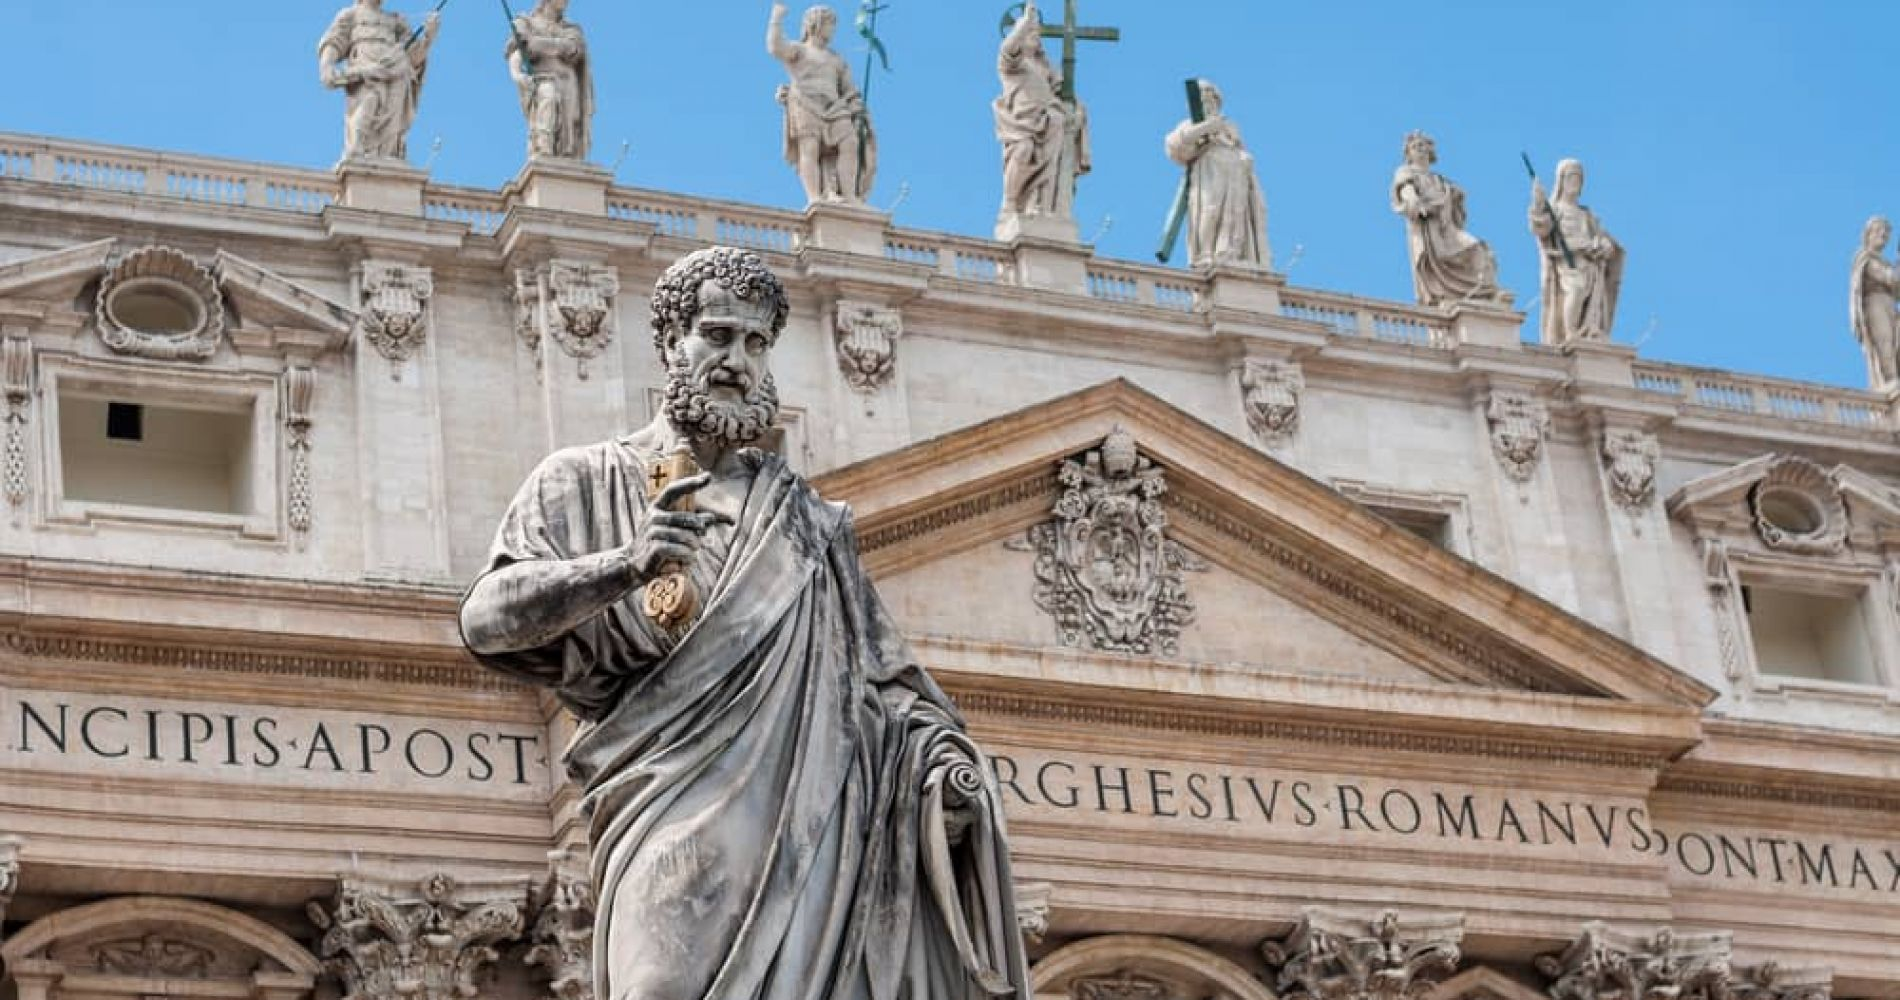 Visit main attractions of Rome including St. Peter's Basilica